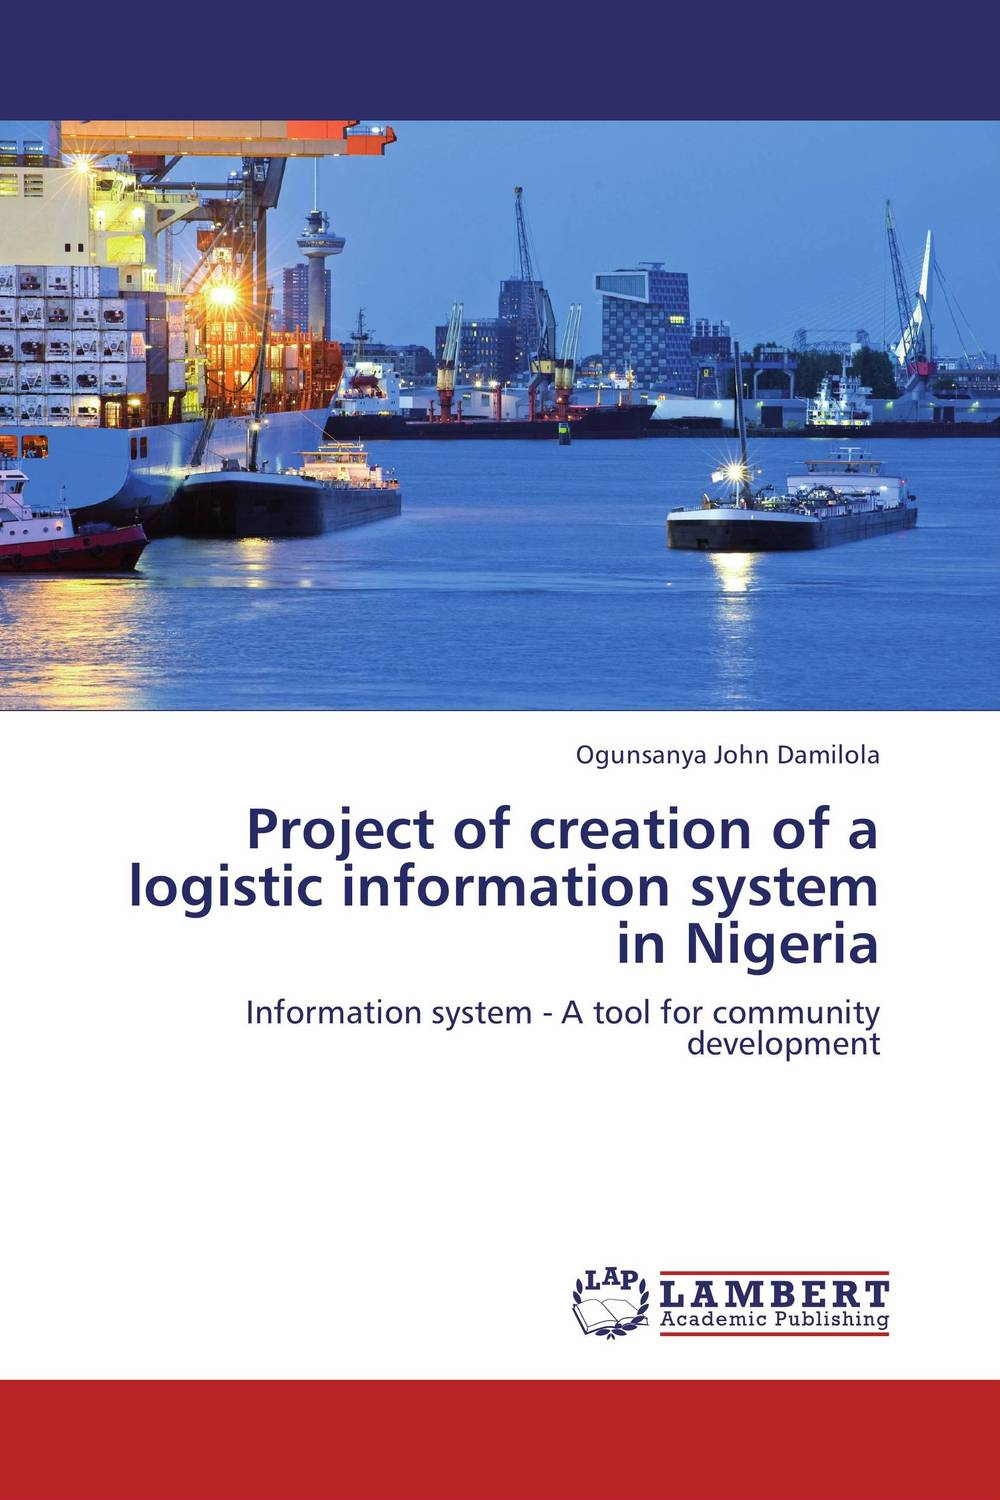 Project of creation of a logistic information system in Nigeria